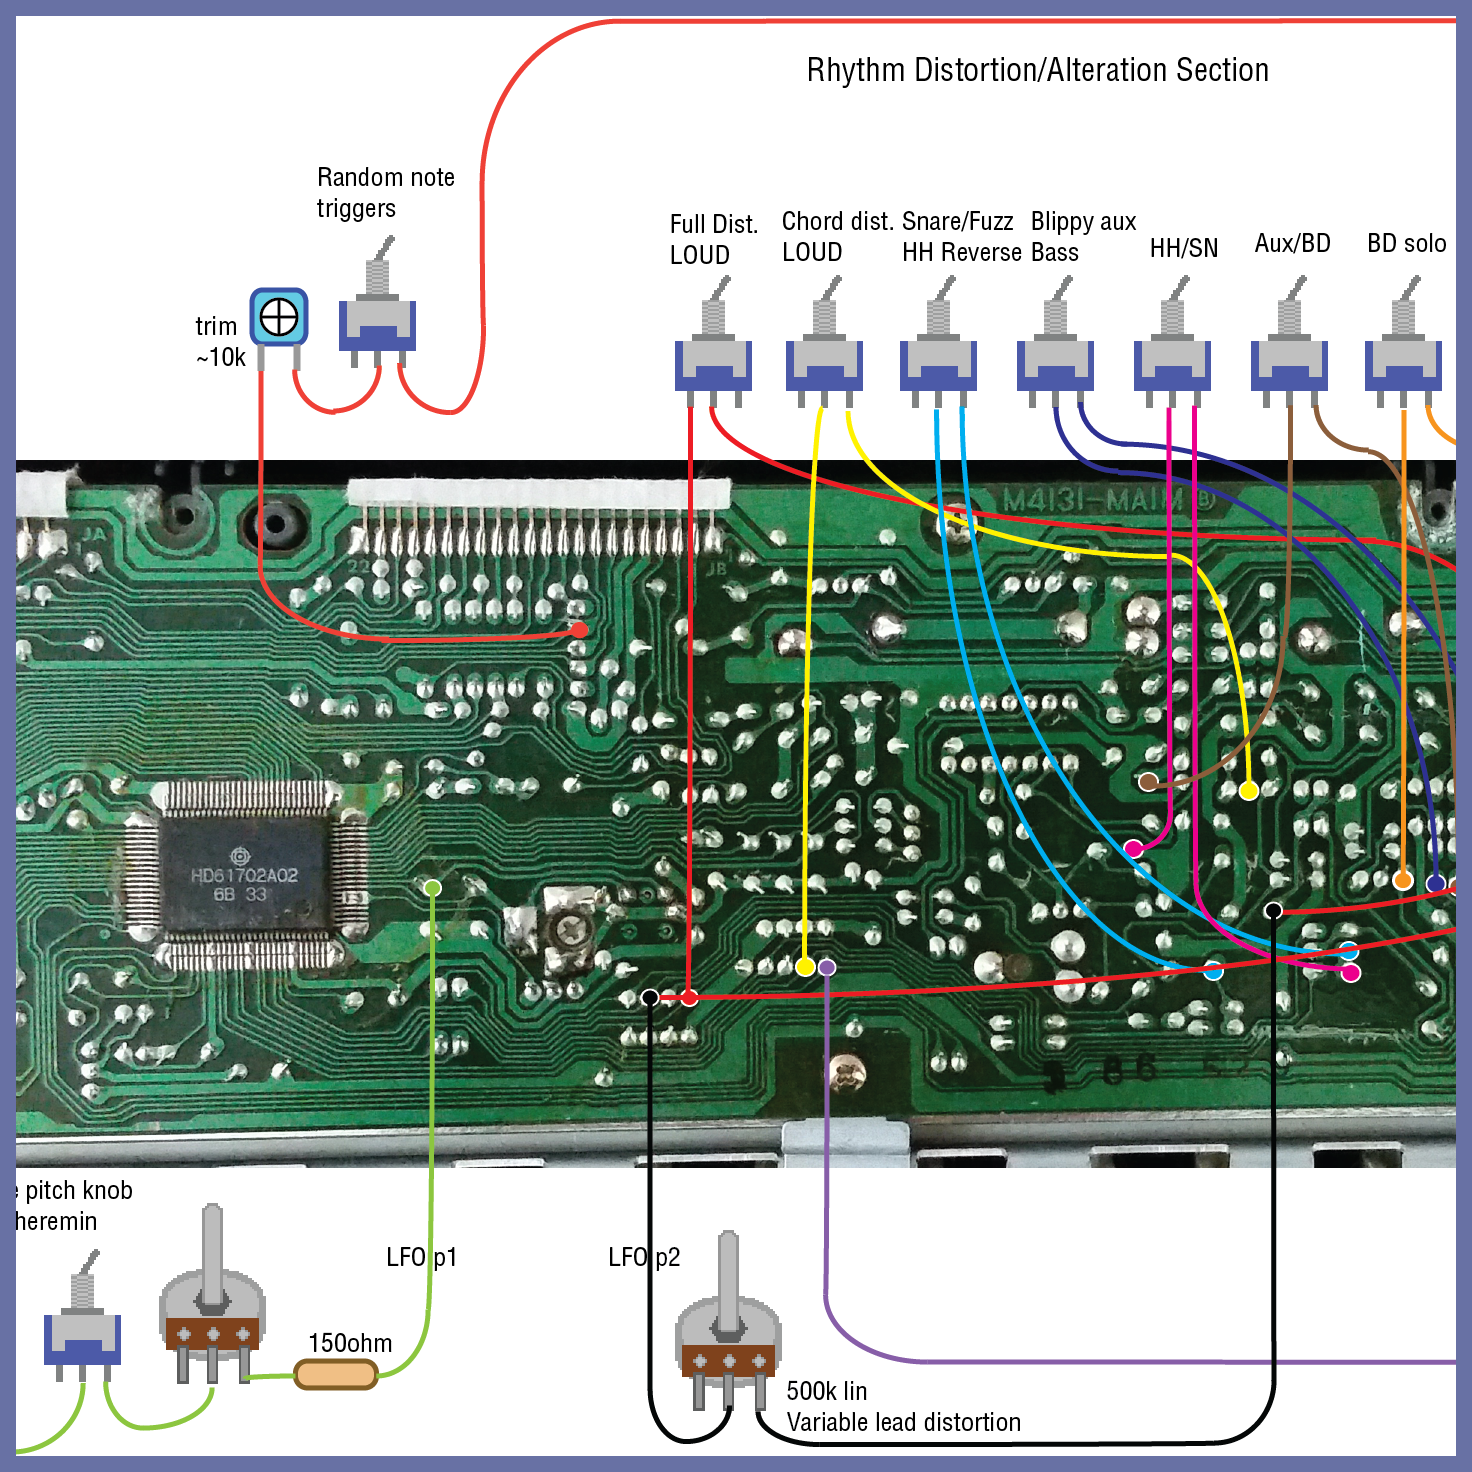 Schematics / Reference Images -